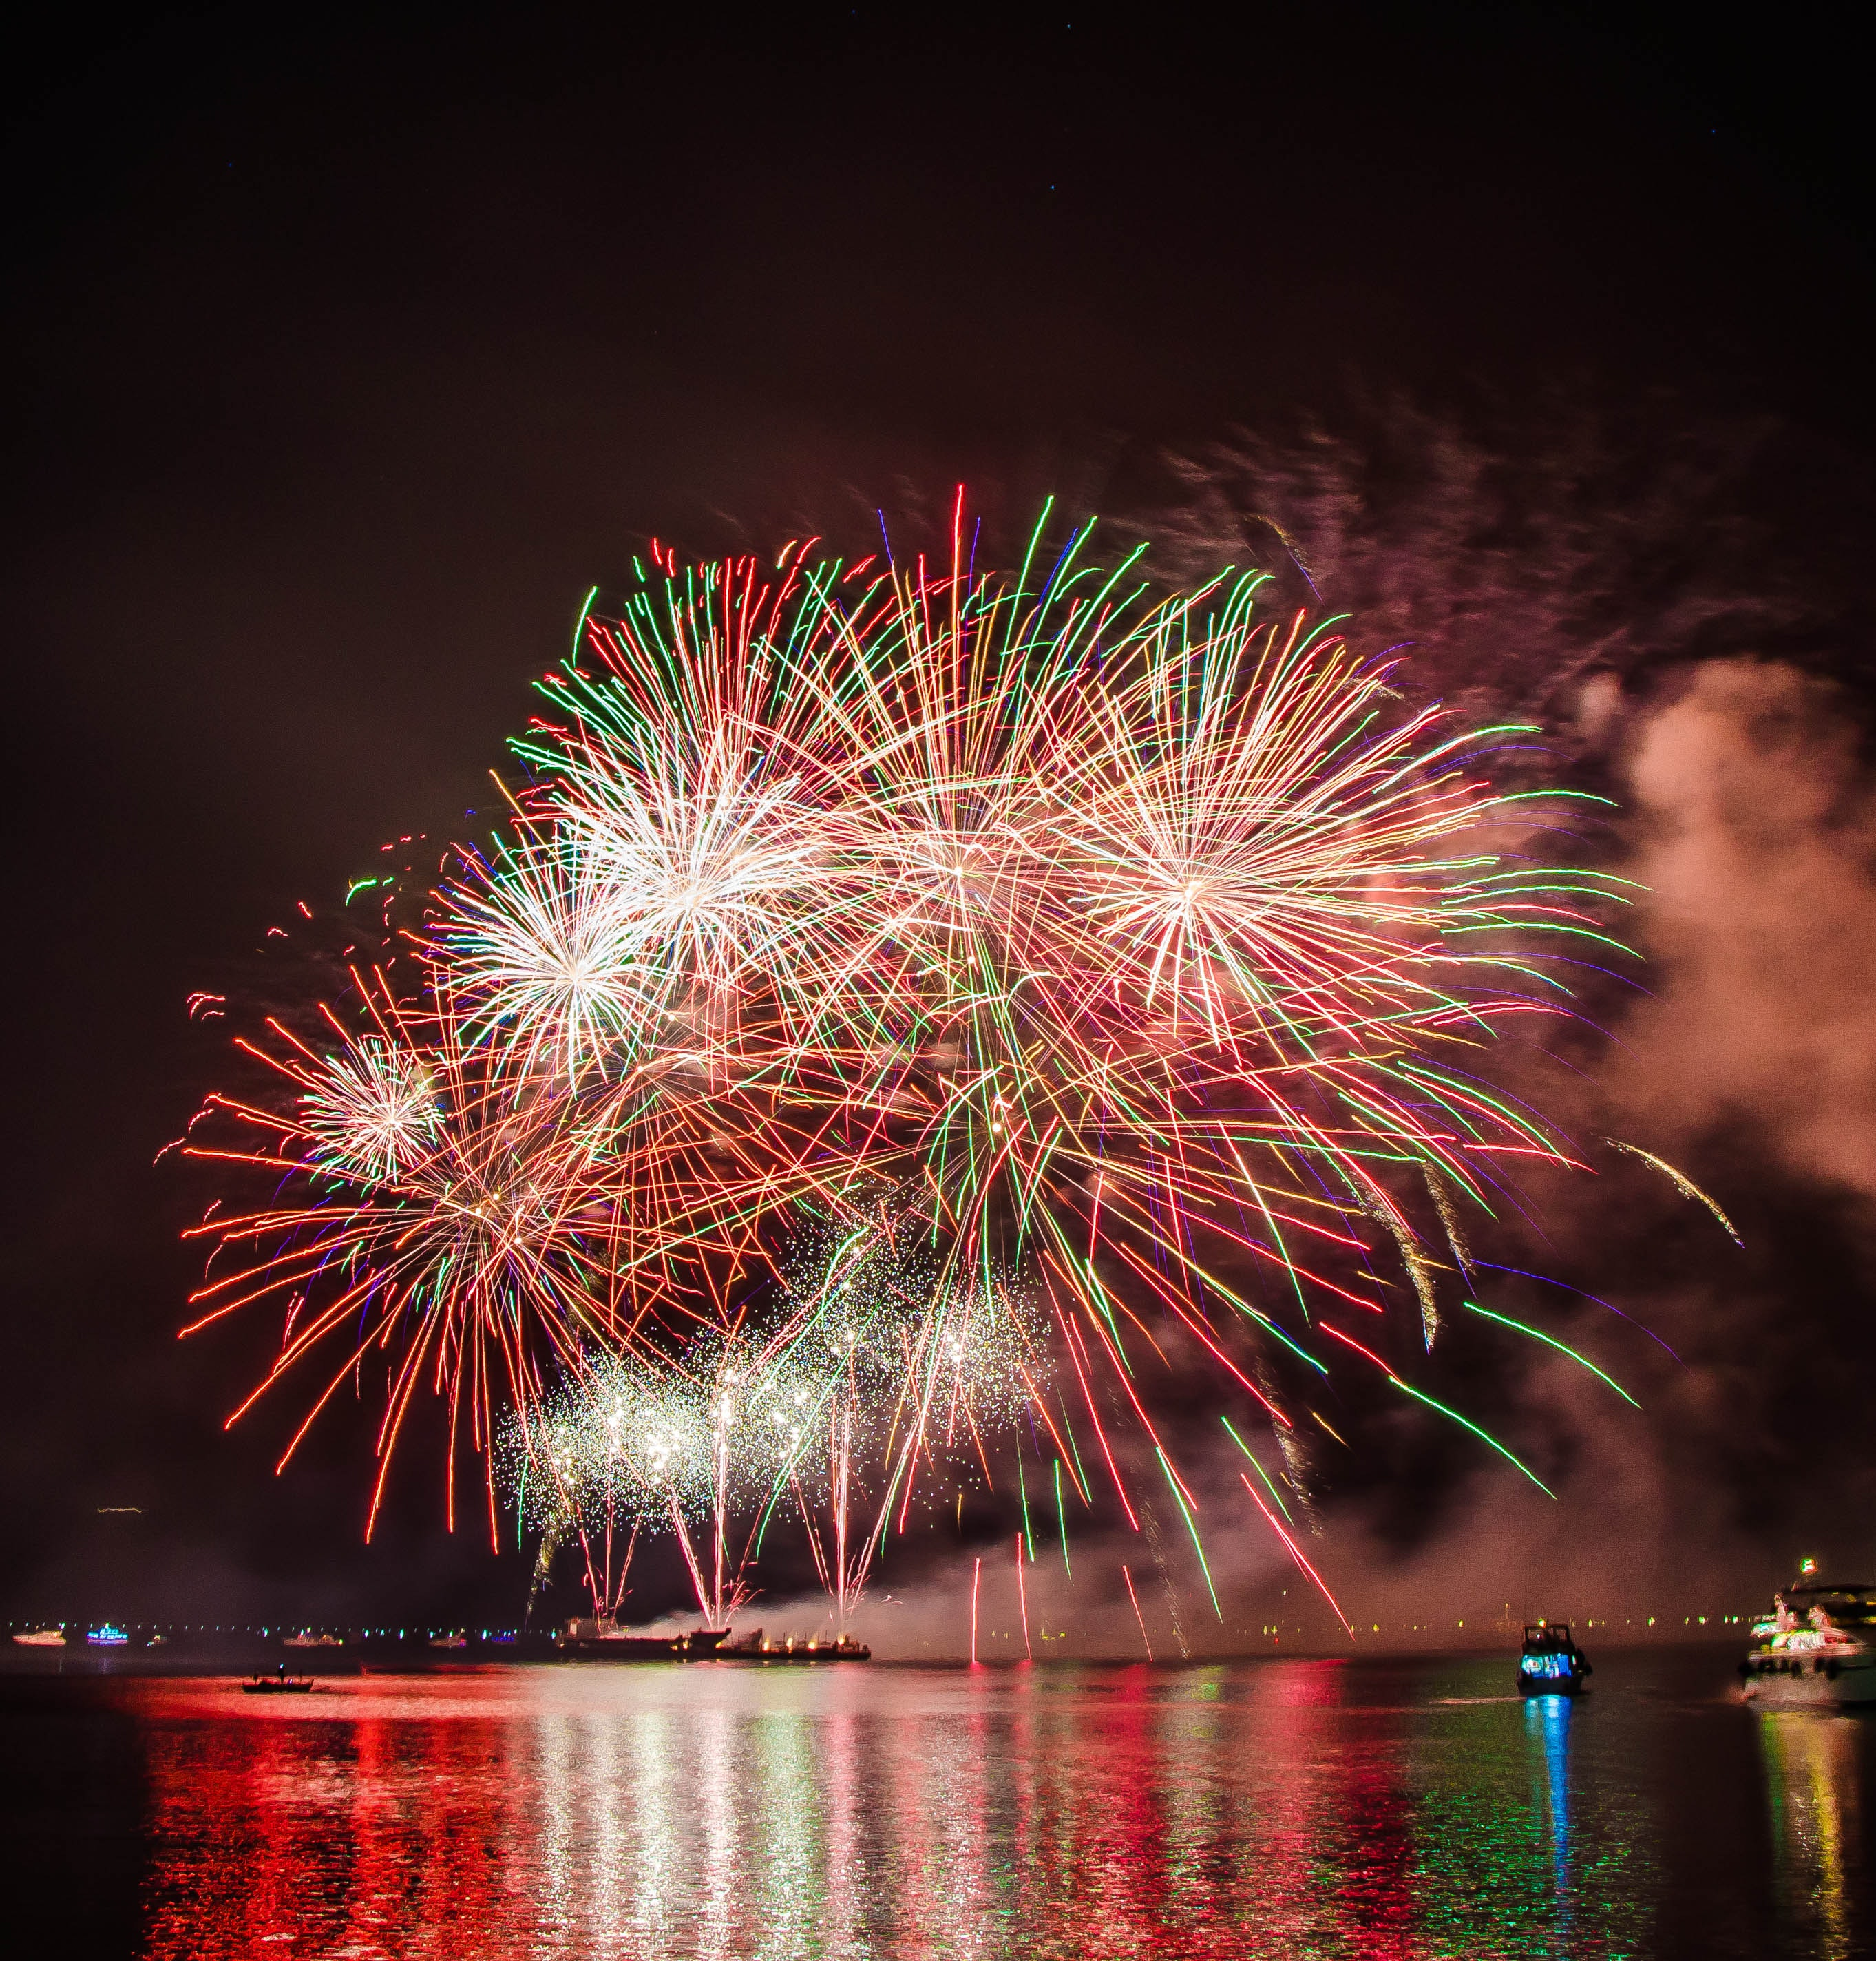 Blooming fireworks in the night sky  54250